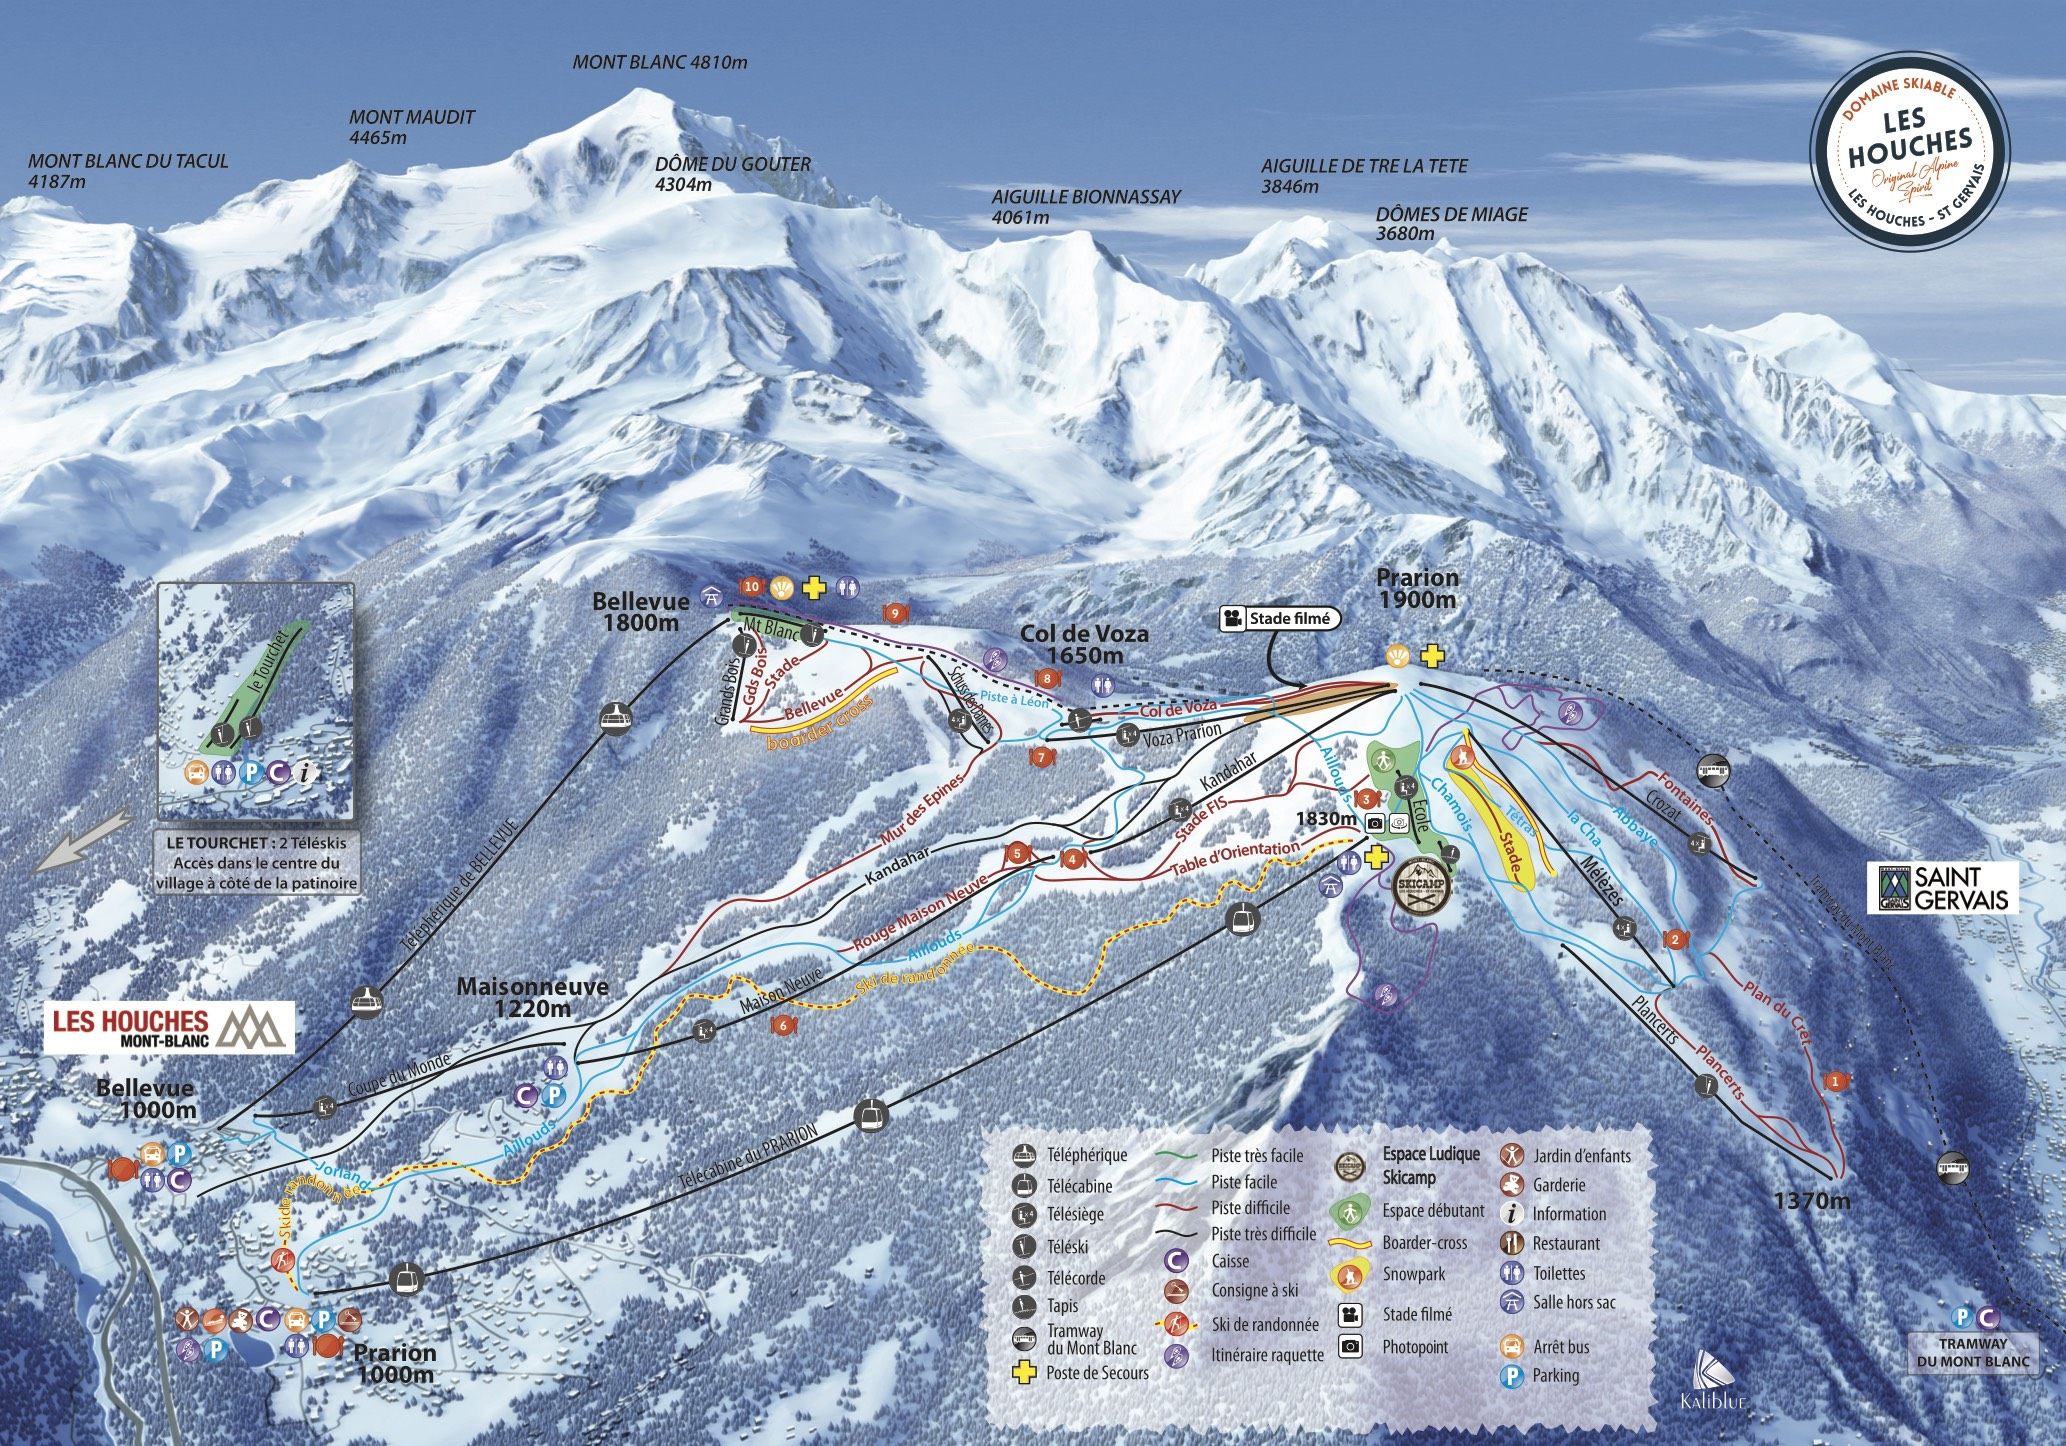 Les Houches Ski Map, luxury chalet chamonix exclusive